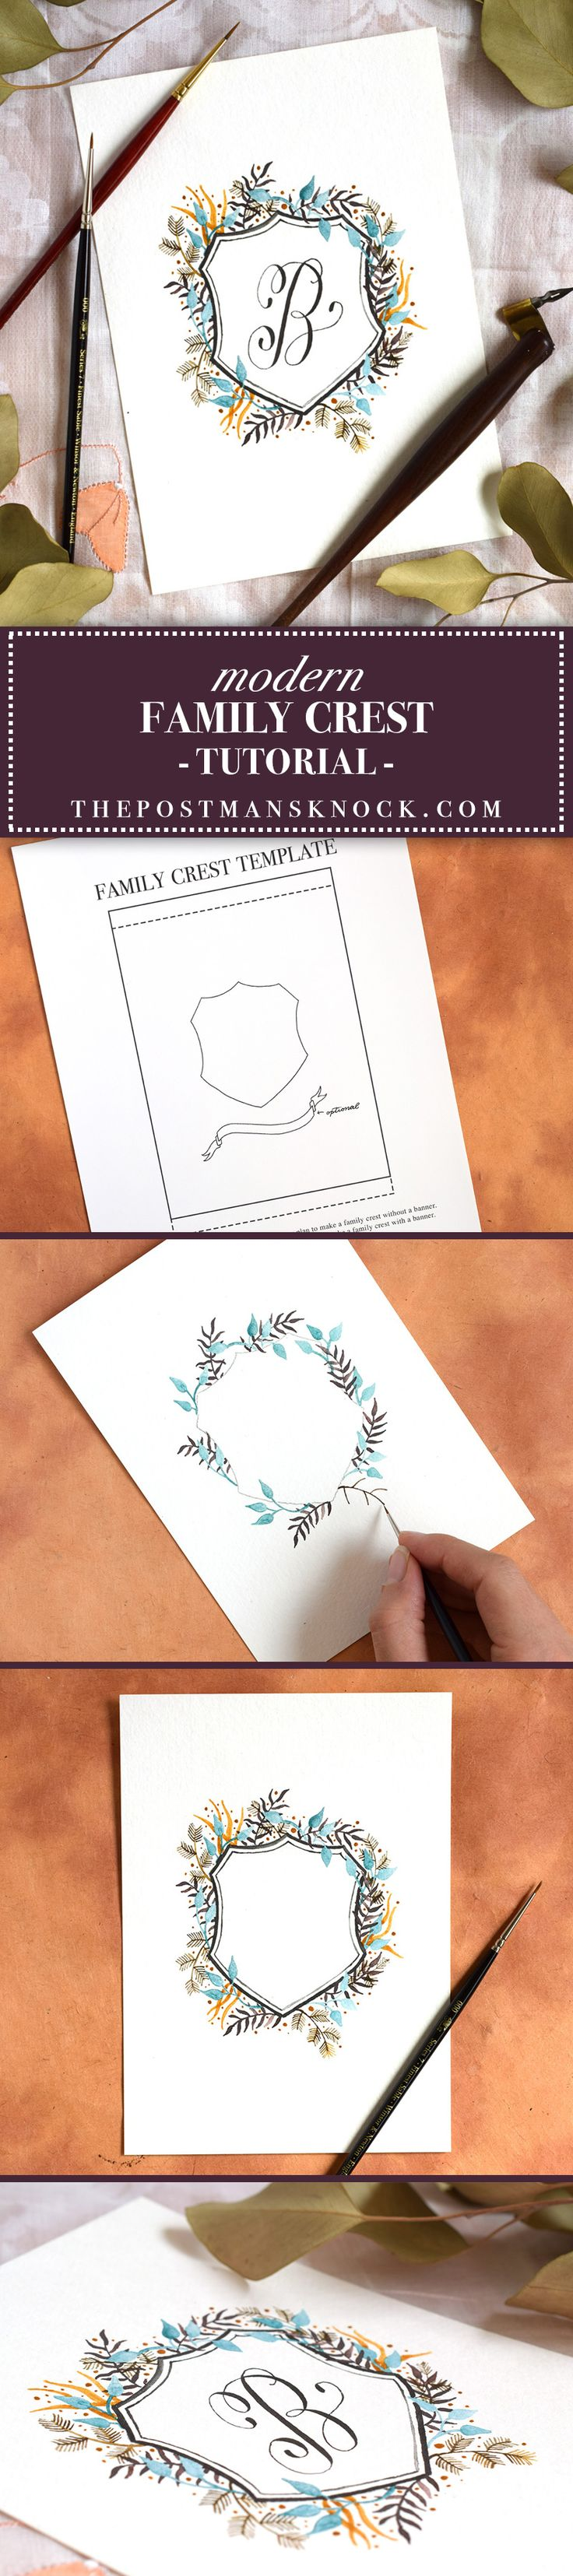 Make a family crest (coat of arms) -- free printable template included in post!